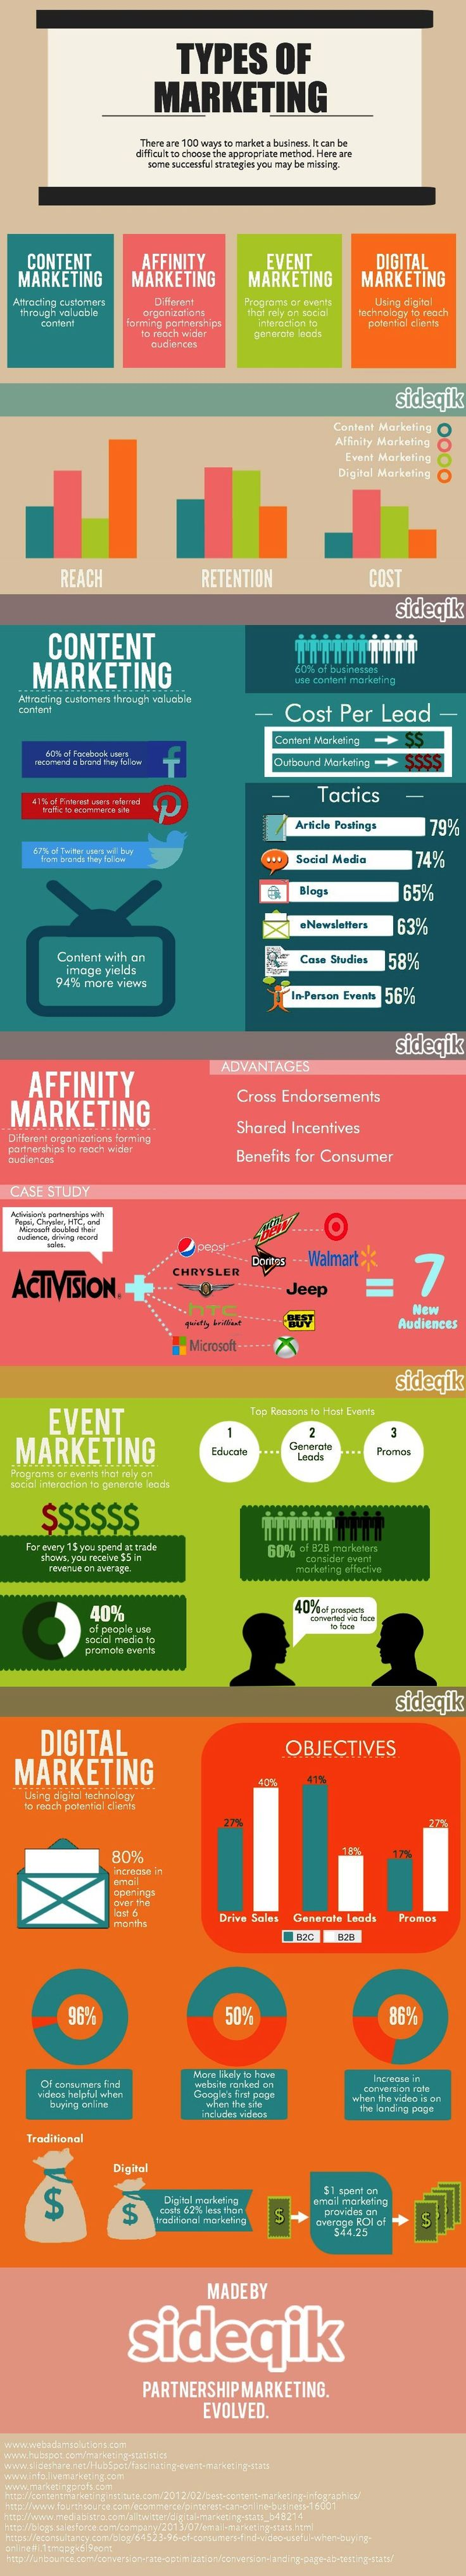 Marketing-Infographic-Infographic-Types-of-Marketing.-There-are-100-ways-to-market-a-business Marketing Infographic : #Infographic: Types of #Marketing.    There are 100 ways to market a #business. ...